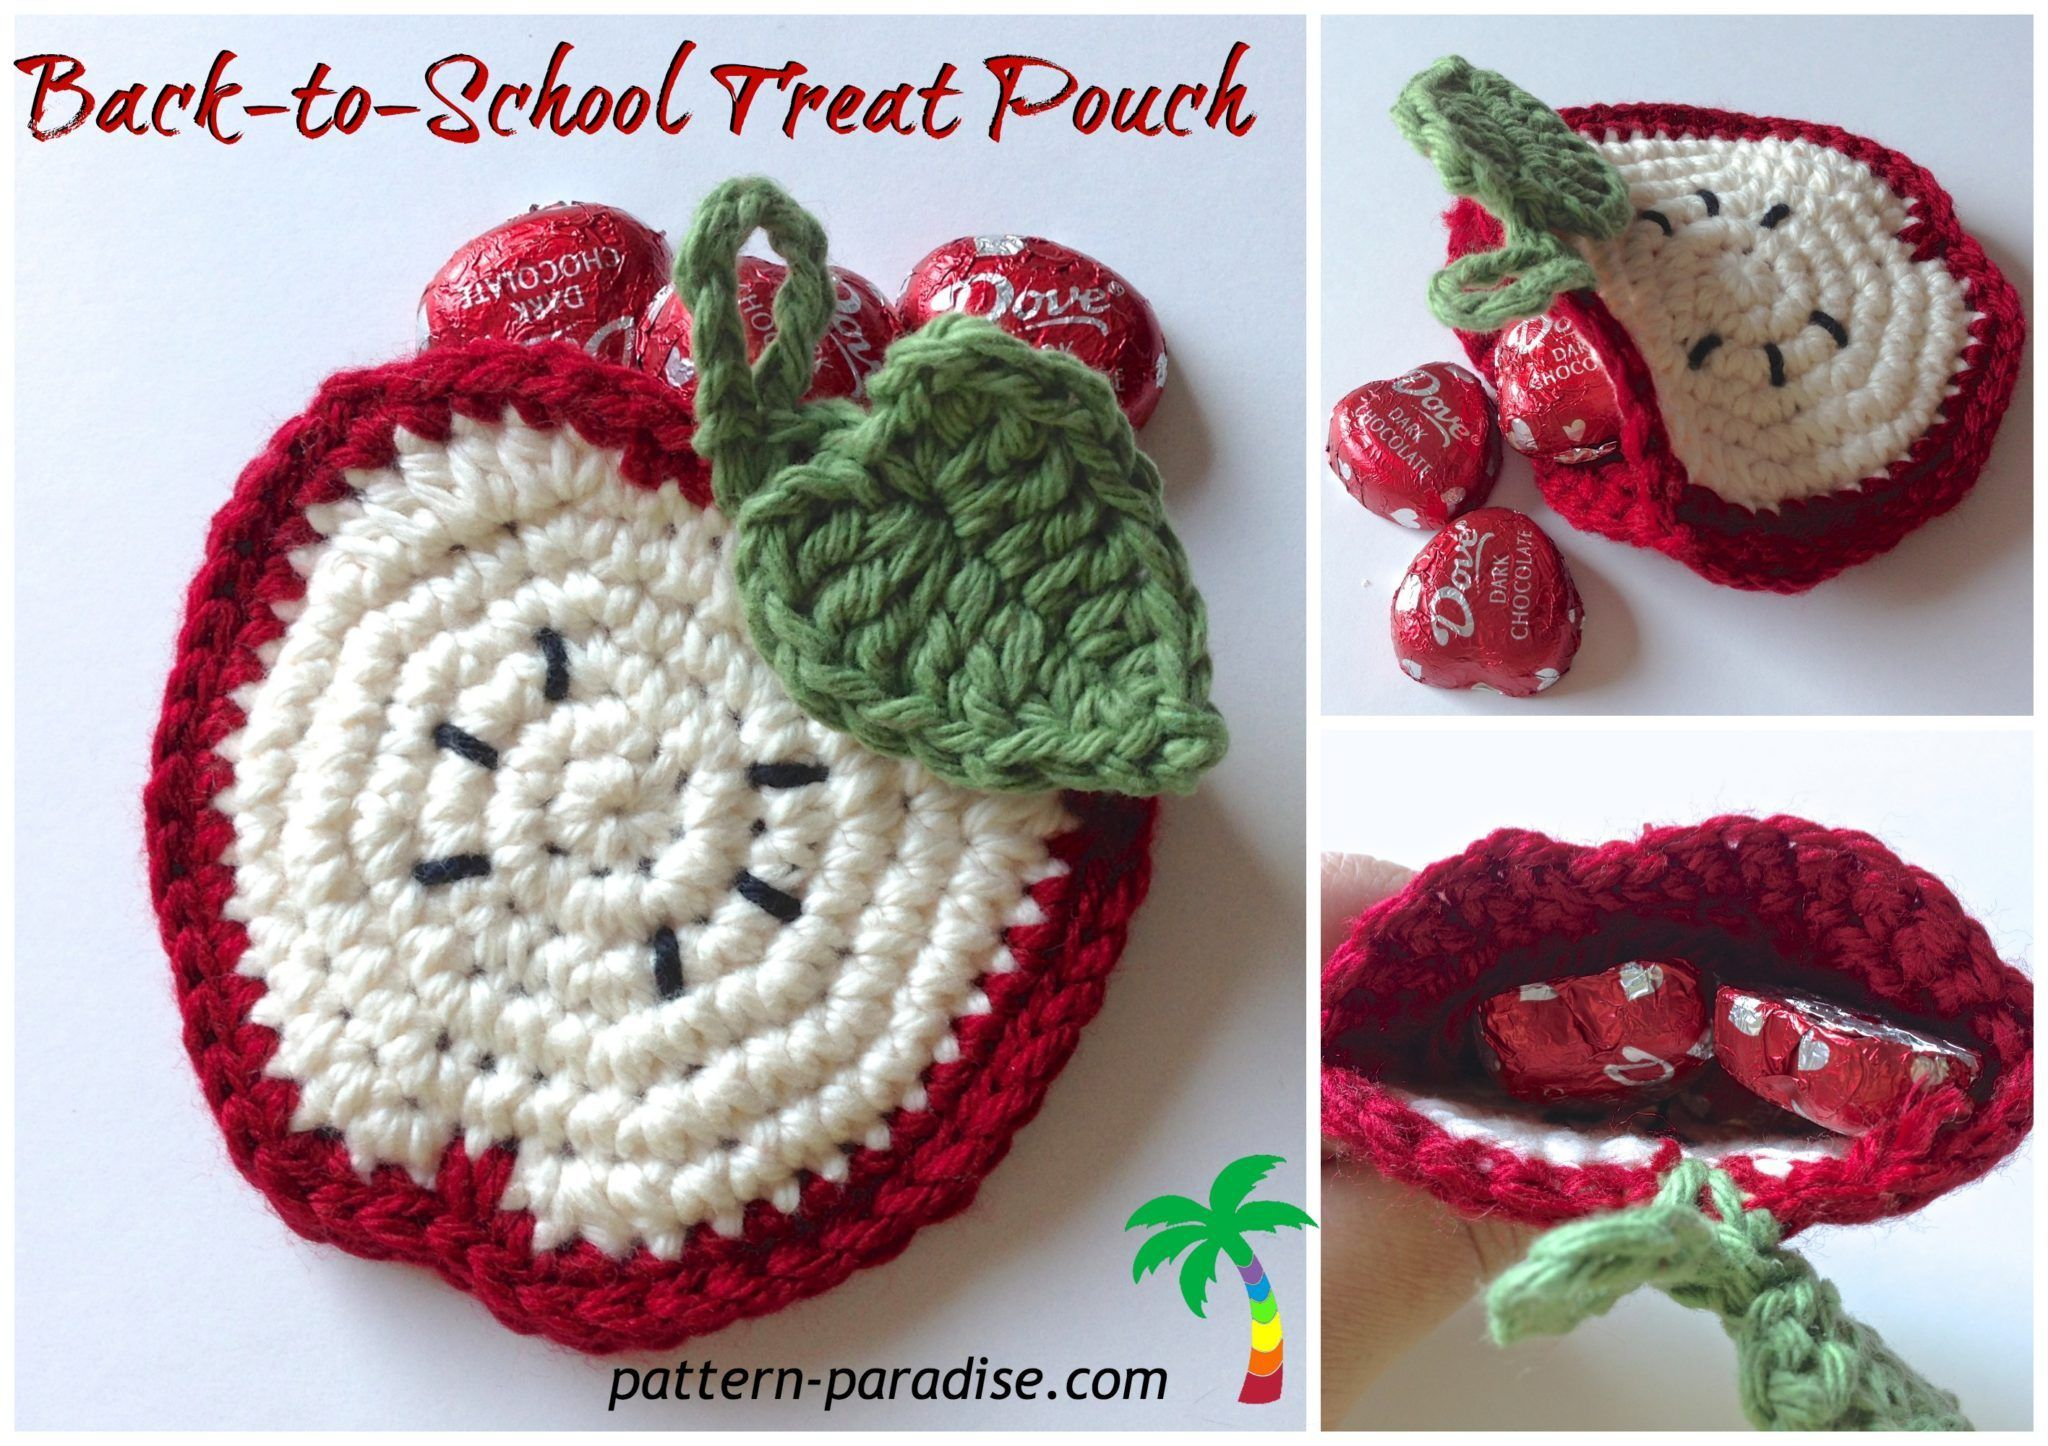 Free Crochet Pattern Apple Coasters or Goodie Pocket | Tortilleros ...